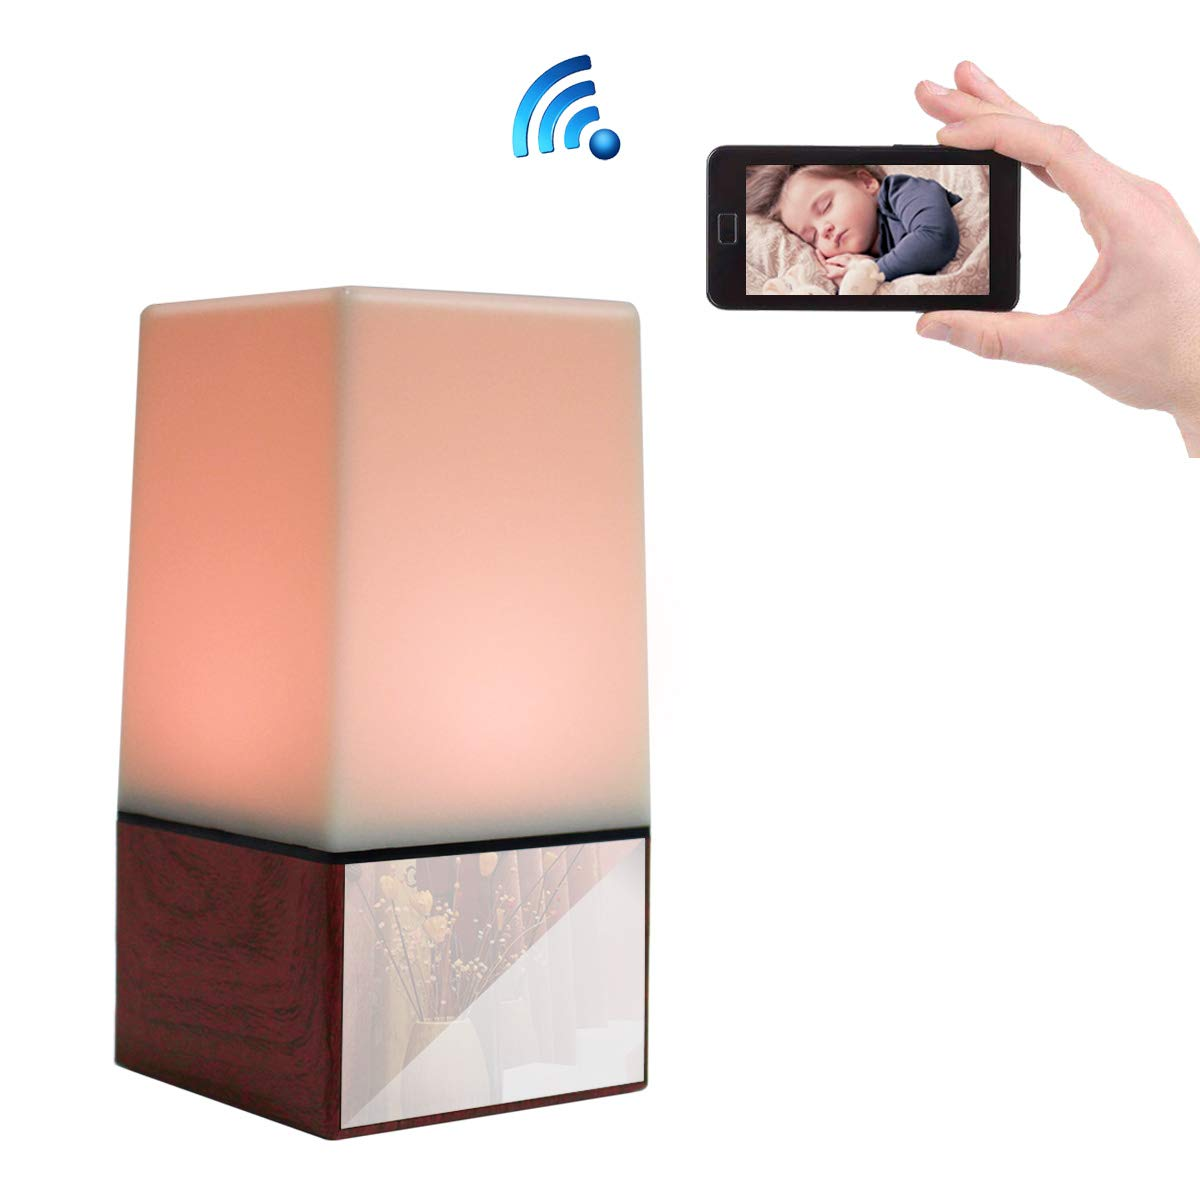 Poetele 1080P Wifi LED Night Light Spy Hidden Camera HD Nanny Cam with Night Vision/Motion Detection/Loop Recording/Real-Time View Security Camera for Home Office Surveillance and Baby Monitor